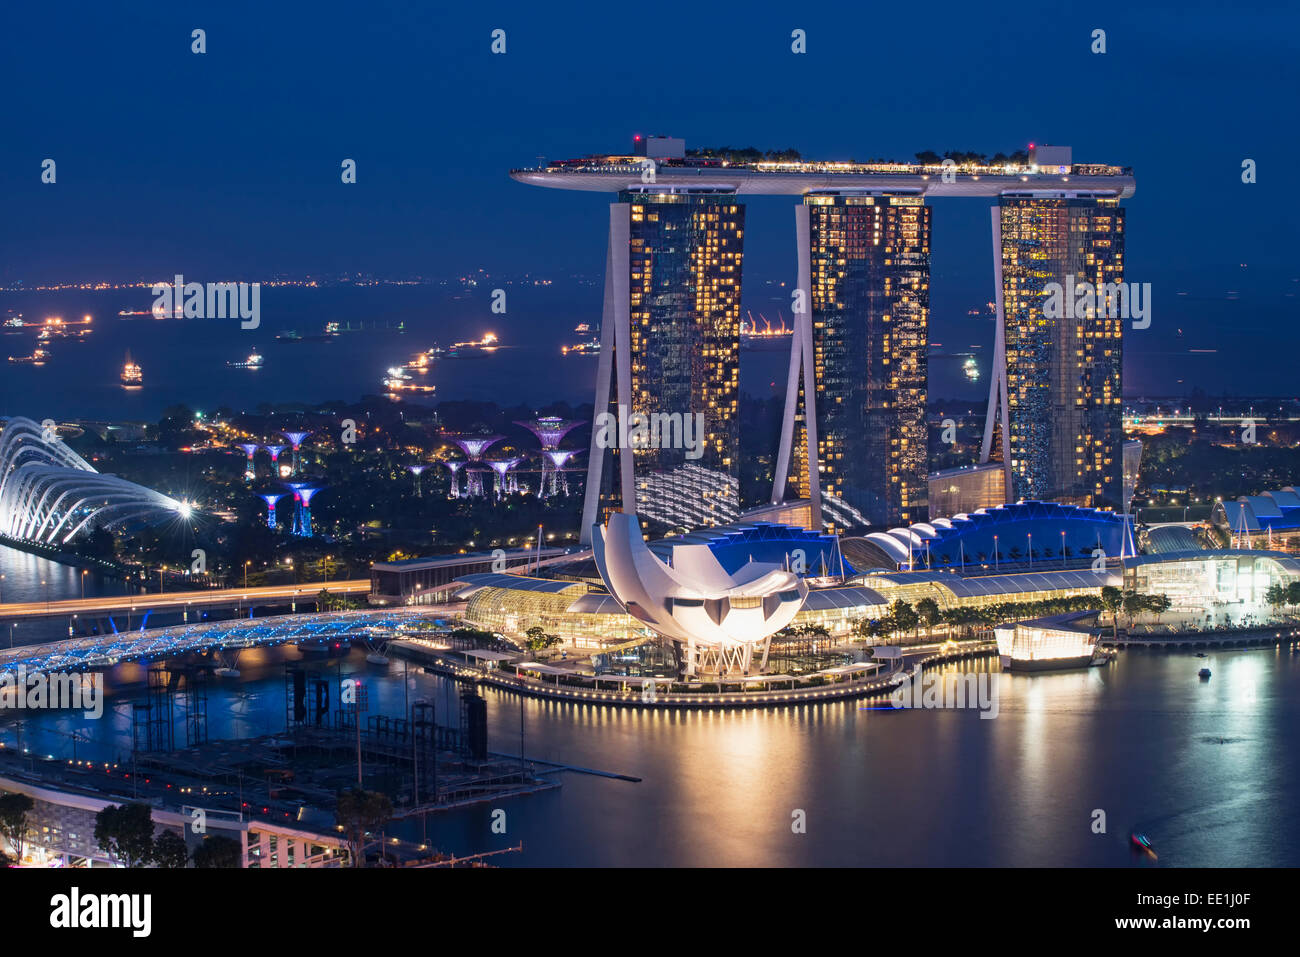 Marina Bay Sands Hotel and Science Museum at night, Singapore, Southeast Asia, Asia - Stock Image